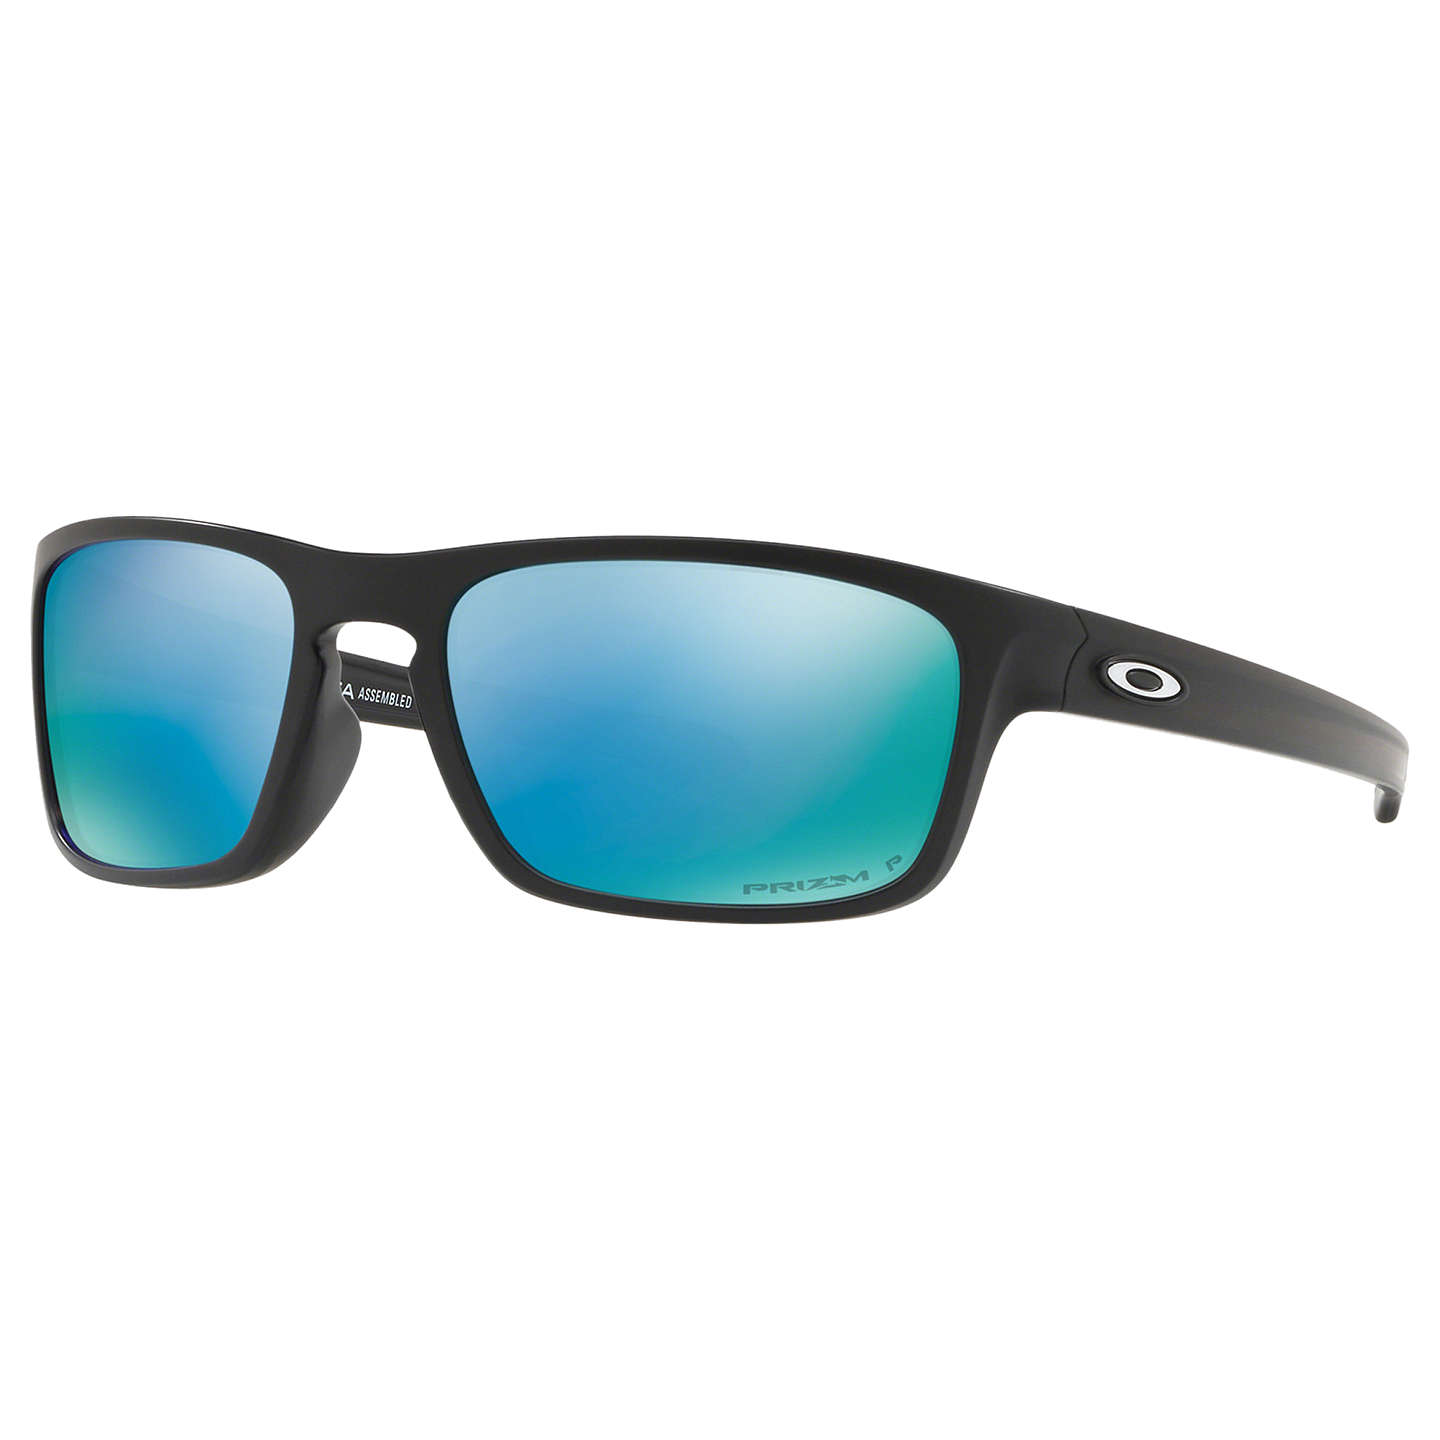 Oakley Sliver Stealth OO9408 05 wCkXP3AEo